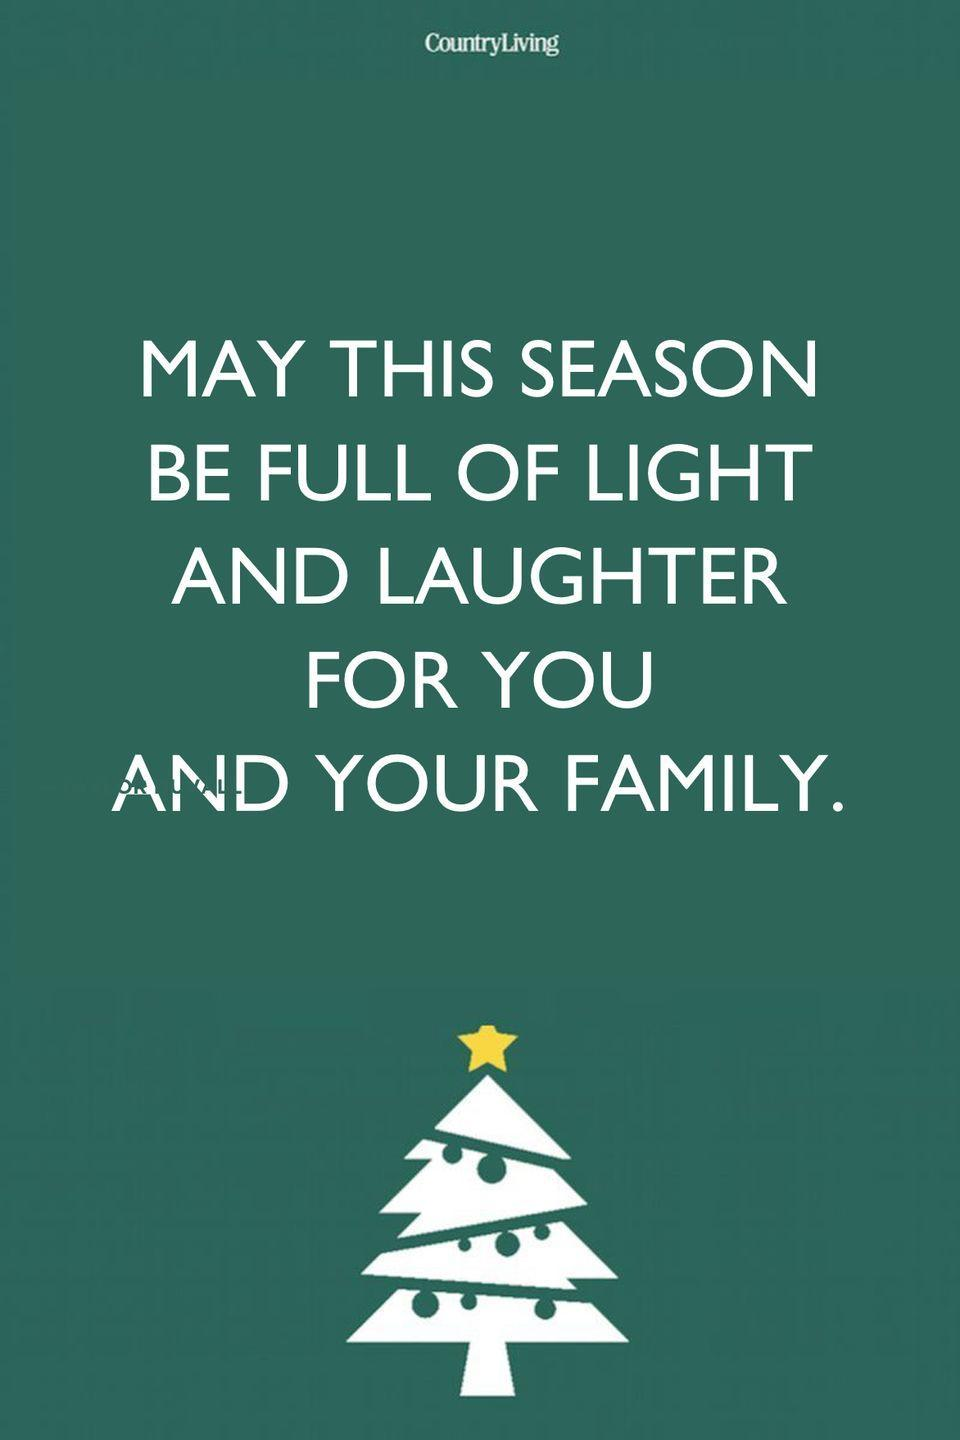 <p>May this season be full of light and laughter for you and your family. </p>